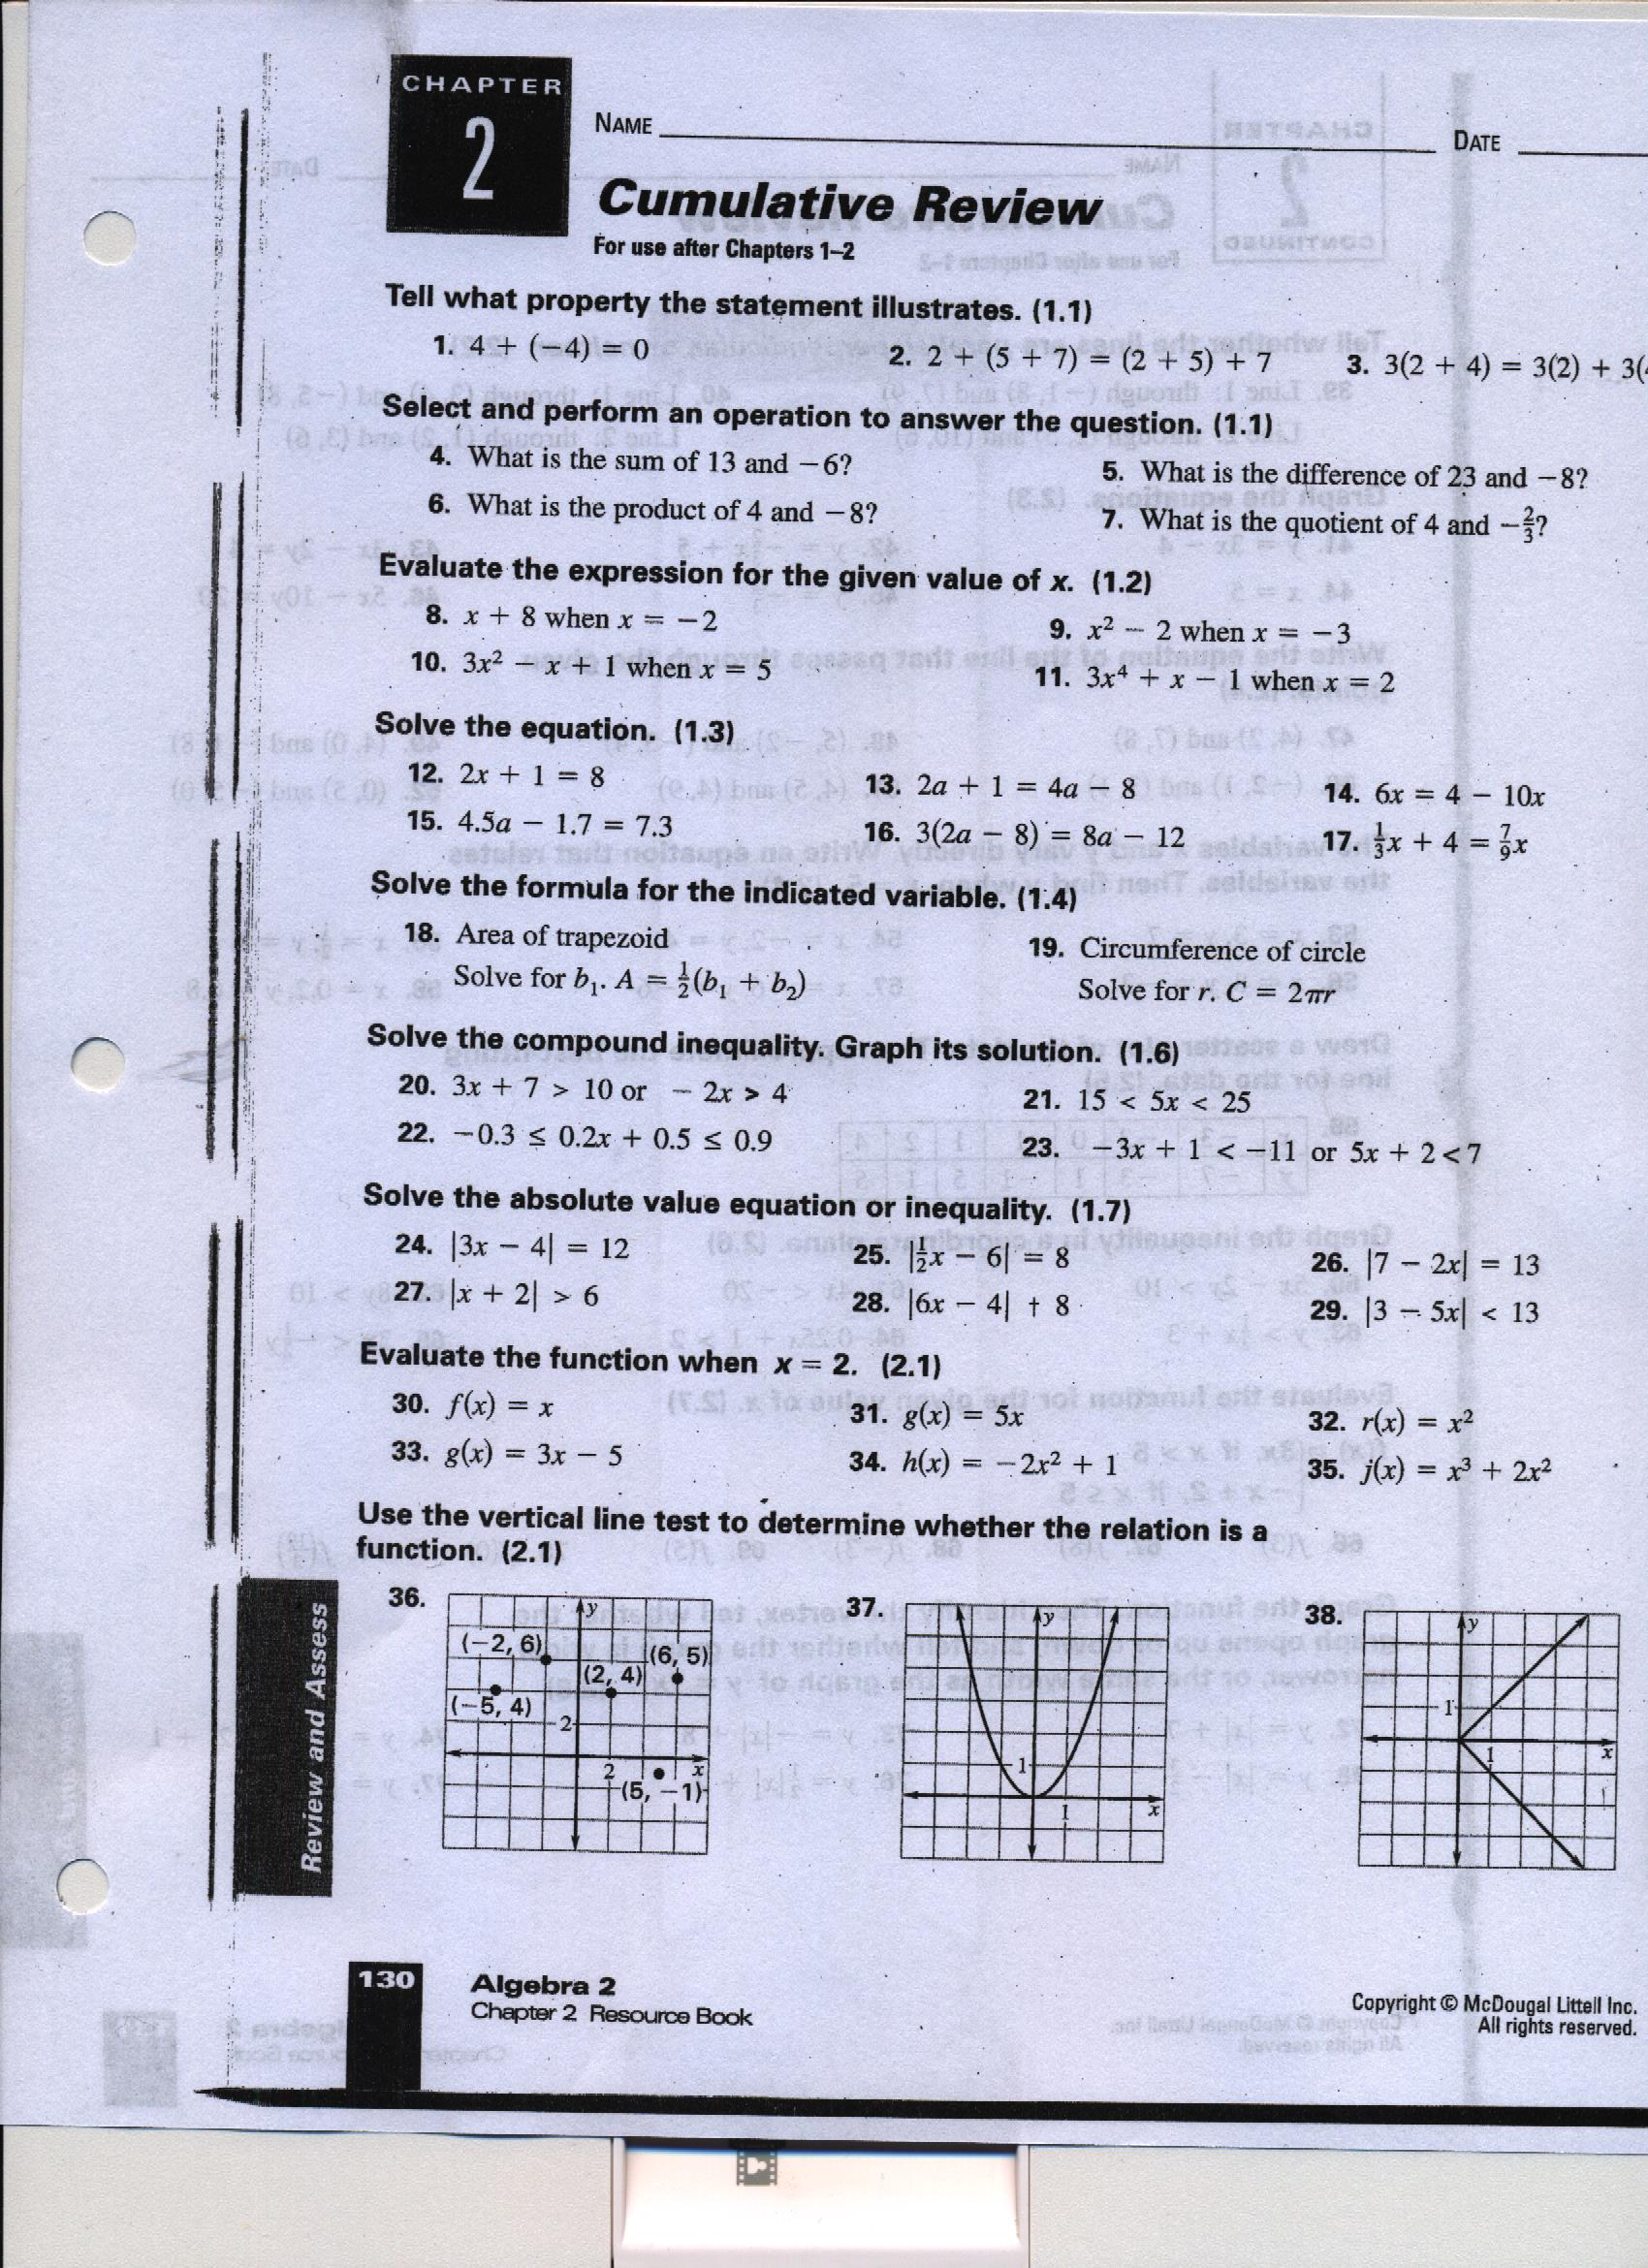 Worksheet Mcdougal Littell Algebra 2 Worksheet Answers mcdougal littell algebra 2 chapter 6 quiz answers fukuman c 2